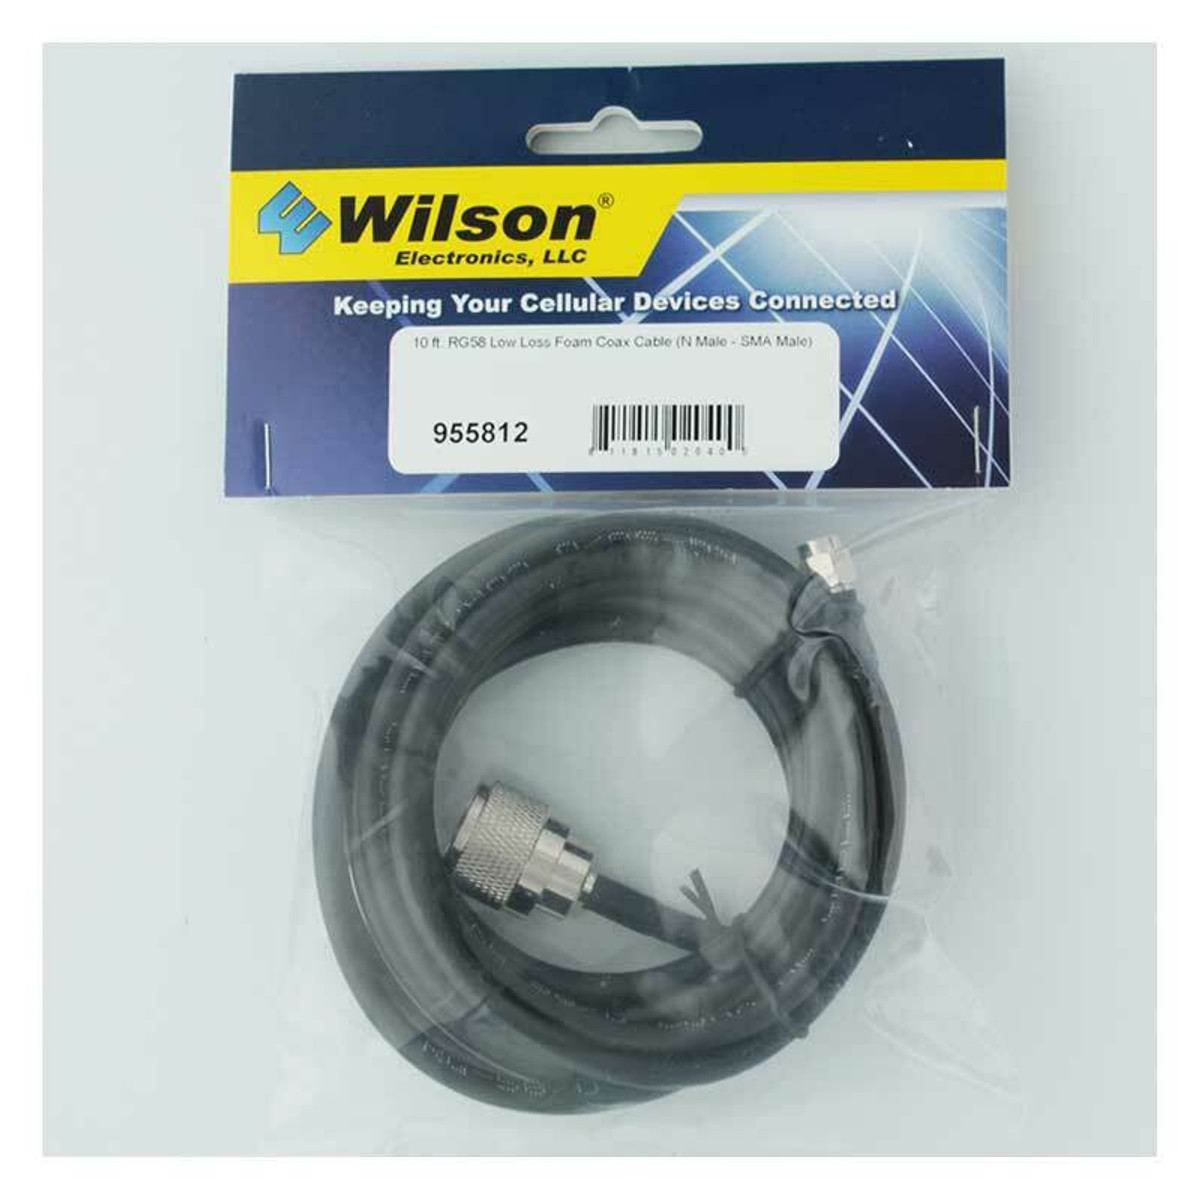 weBoost (Wilson) 955812 RG58 Extension N-Male to SMA-Male | 10f t Black Cable